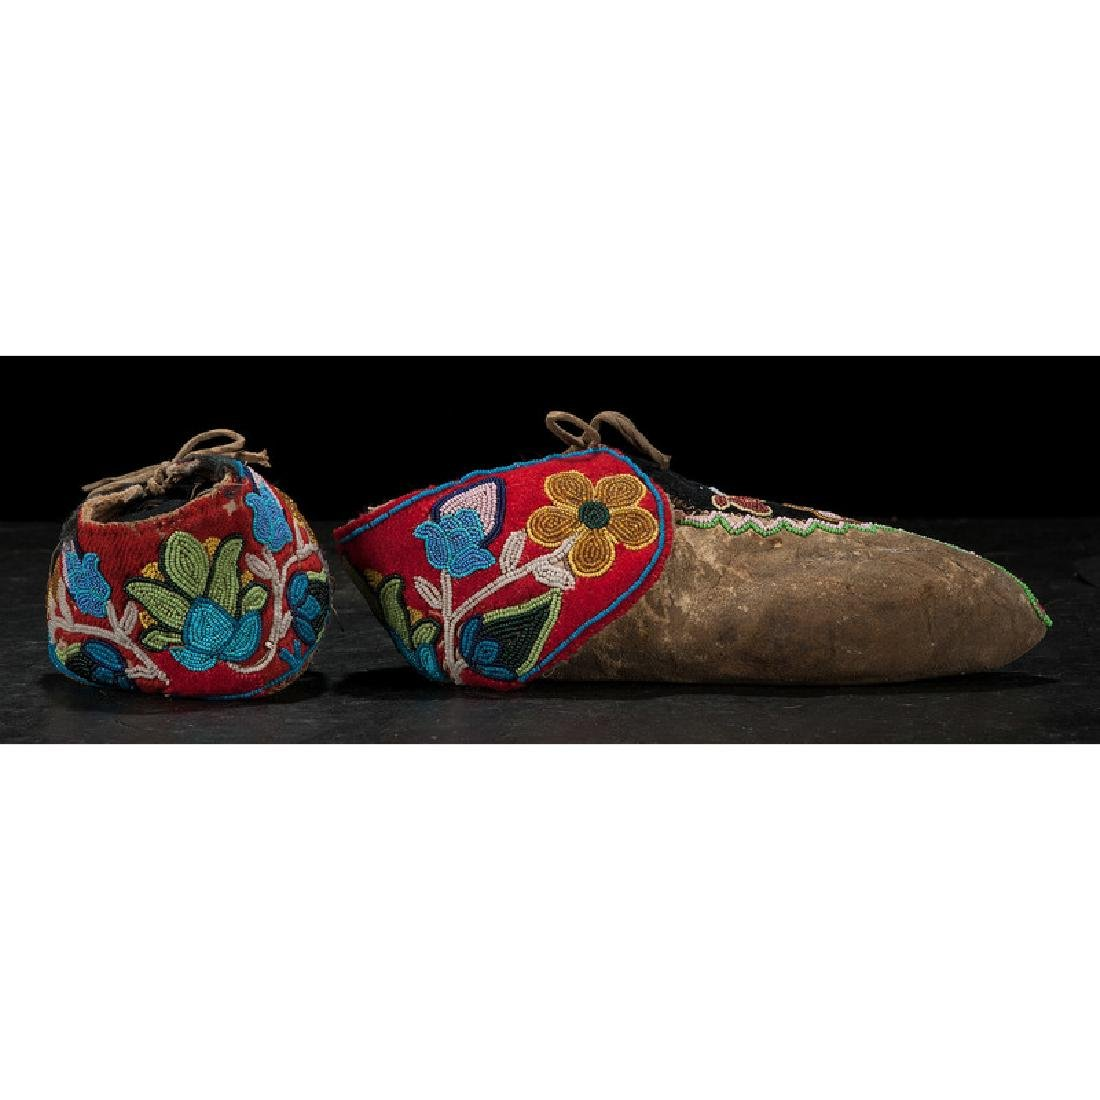 Anishinaabe Beaded Hide Moccasins - 2